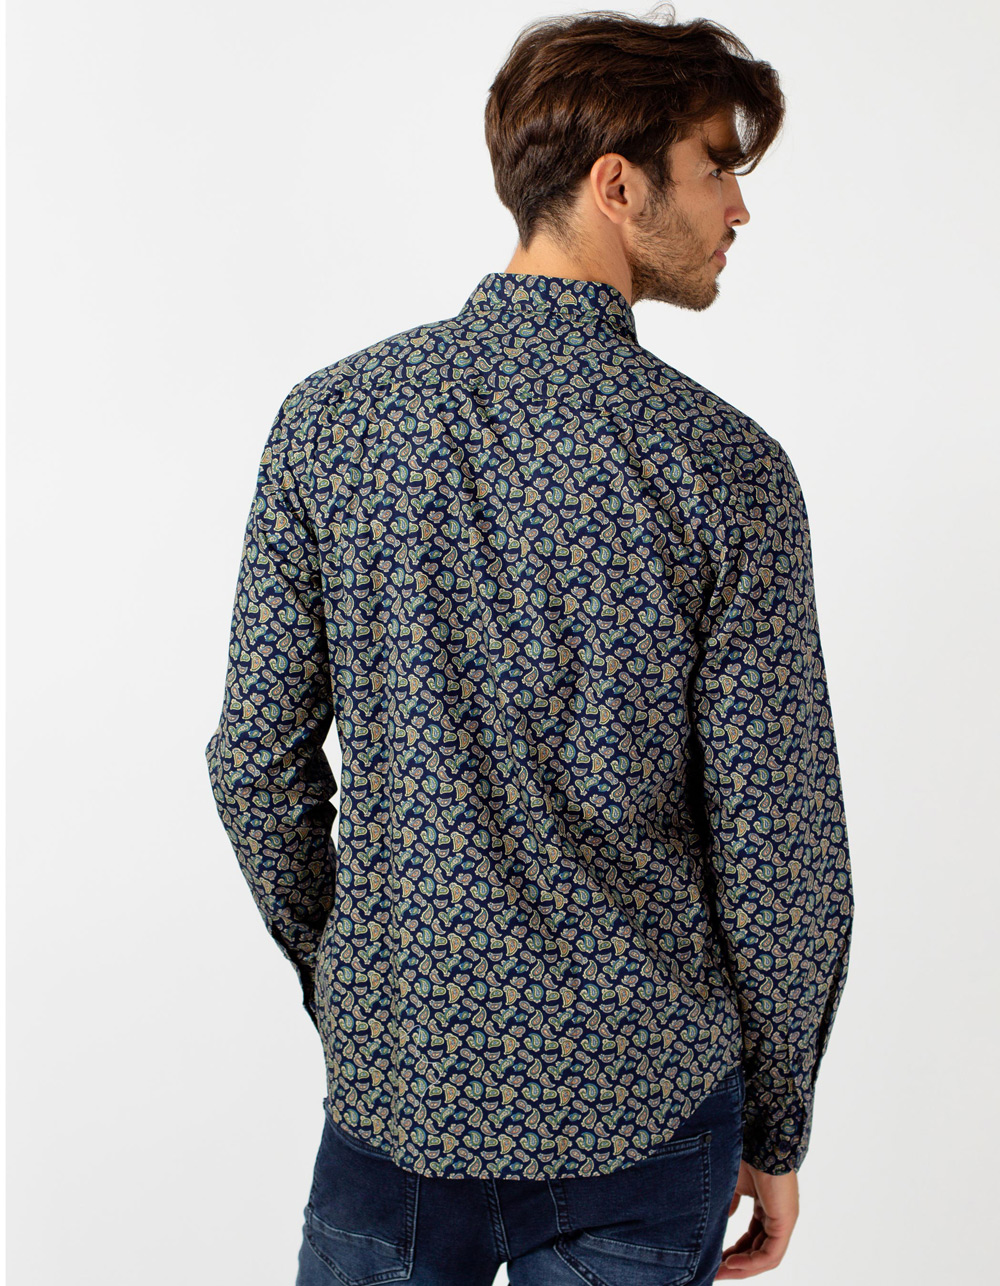 Printed shirt with cashmere pattern - Backside